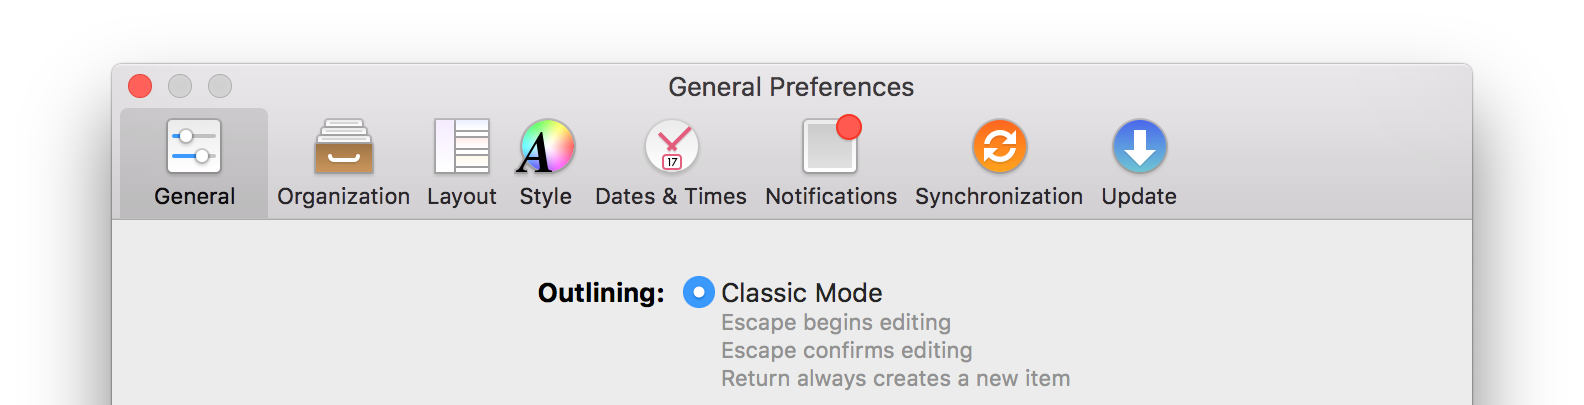 Latest OmniFocus preferences window with colourful and distinct icons.